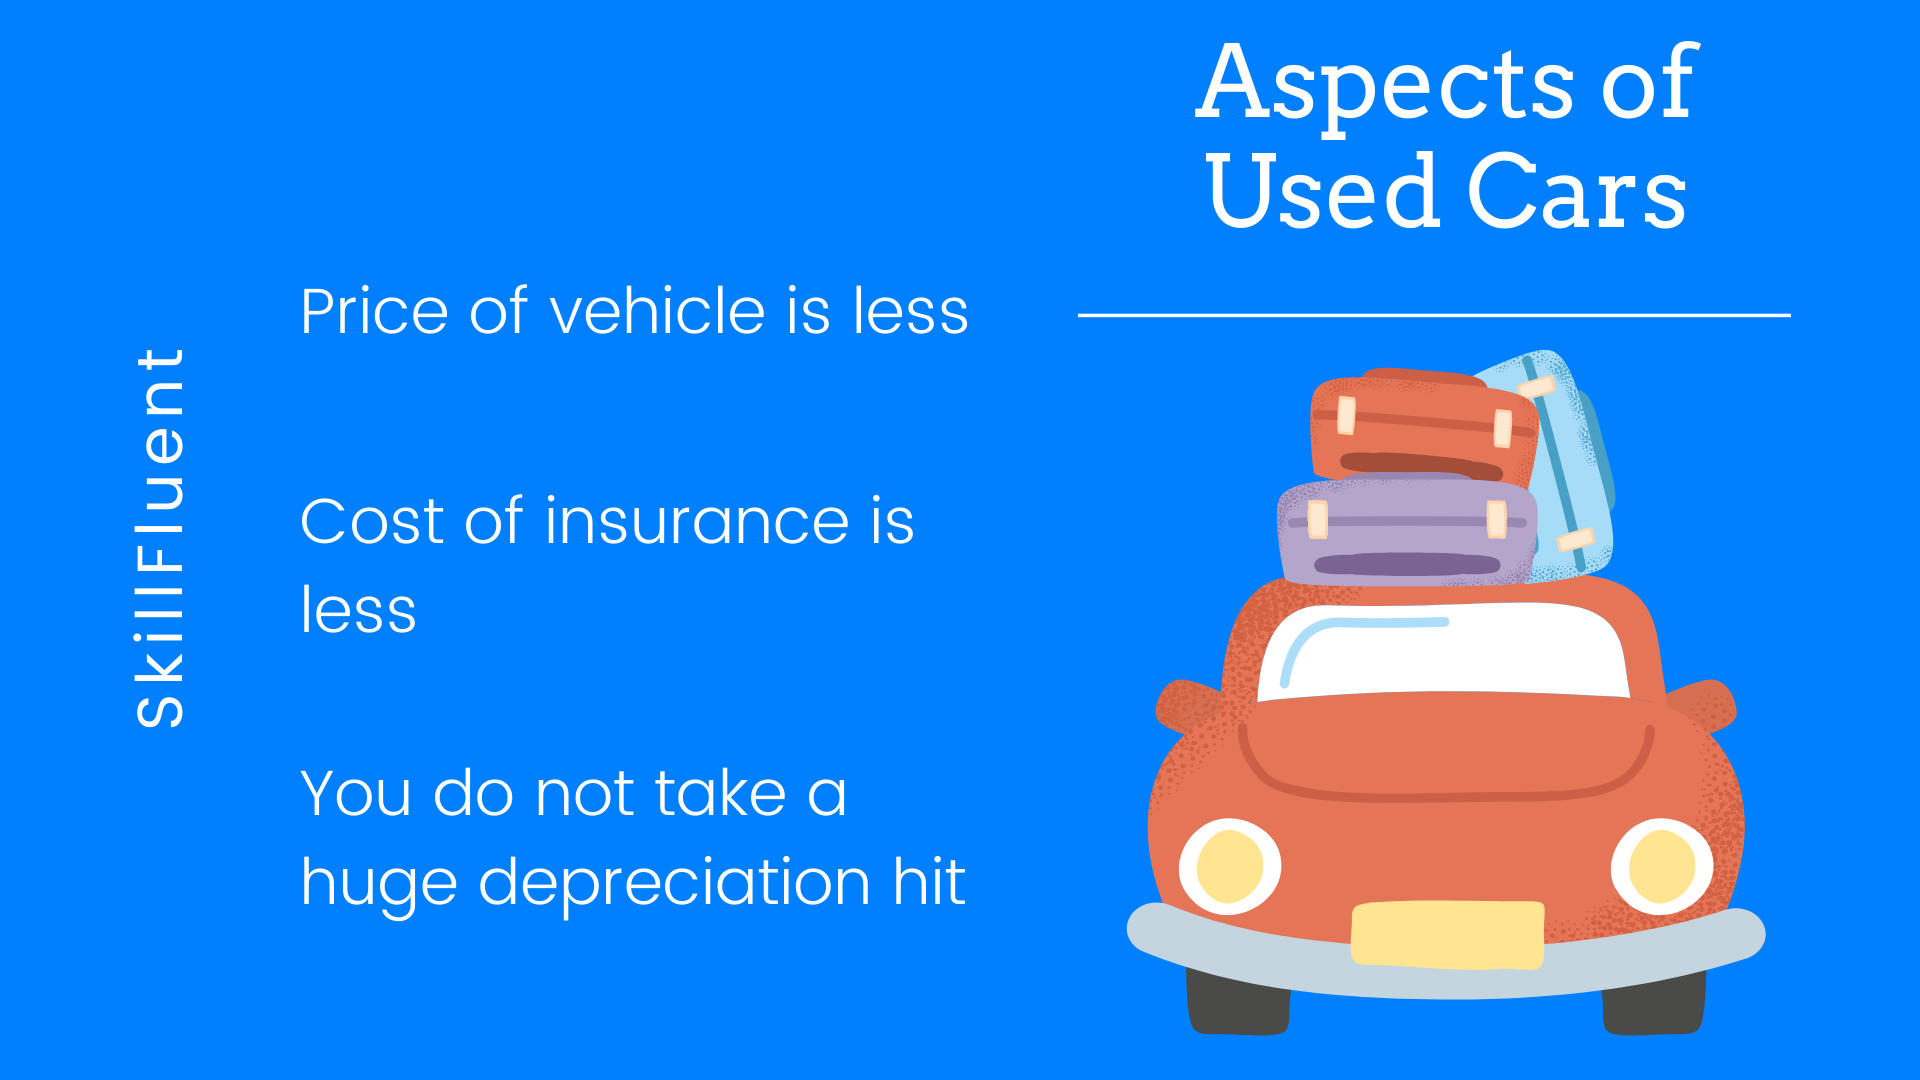 1. Price of Vehicles are less. 2. Cost of Insurance is Less. 3. You do not take a huge depreciation hit.